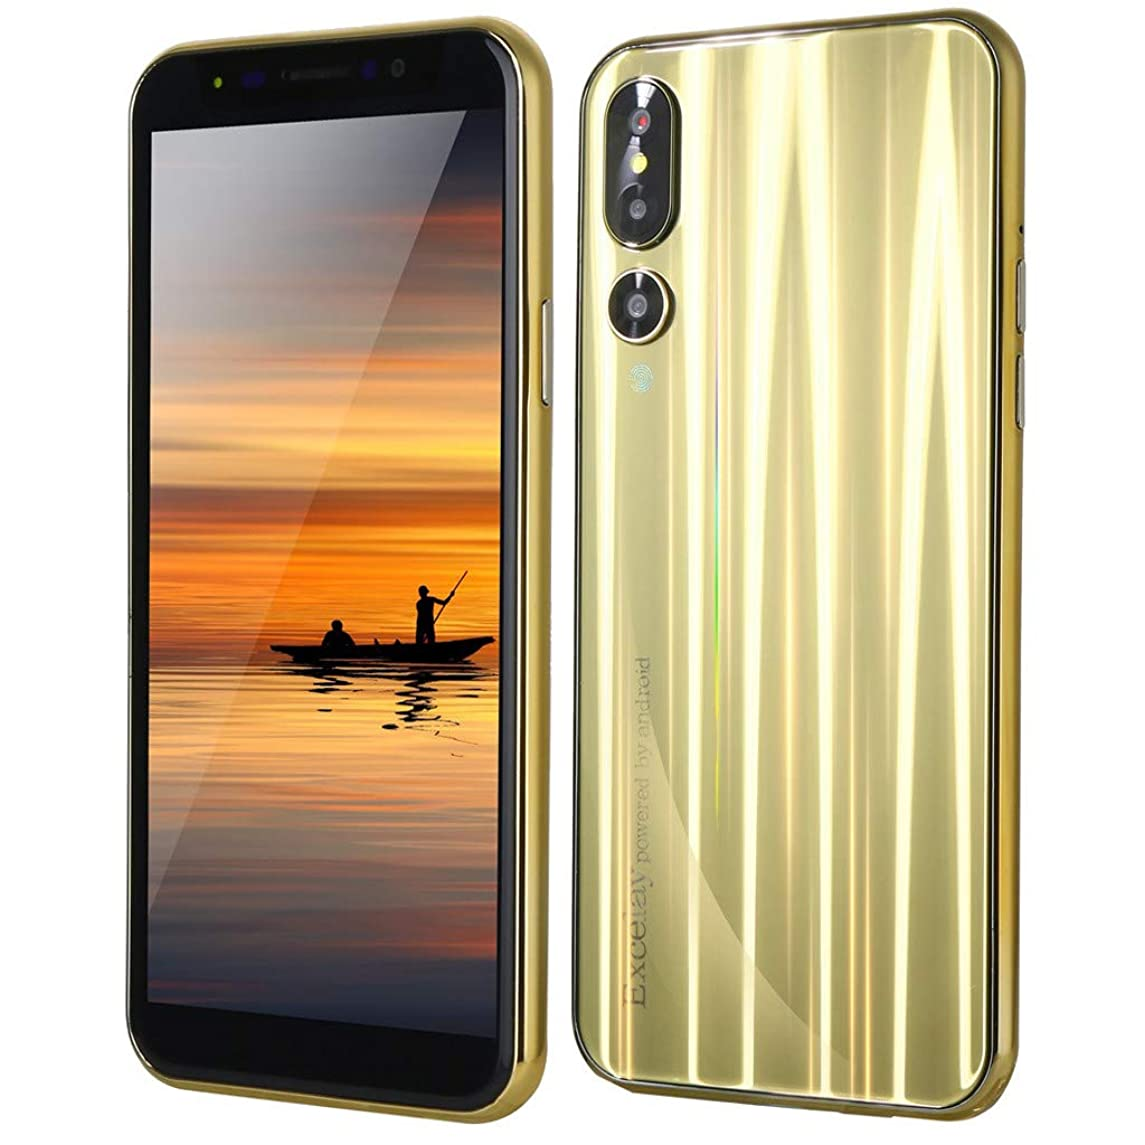 Android Phones Smartphone/ 5.72 Inch Dual HD Camera Android 6.1 1+4G GPS 3G Call Mobile Unlocked Cell Phones EU